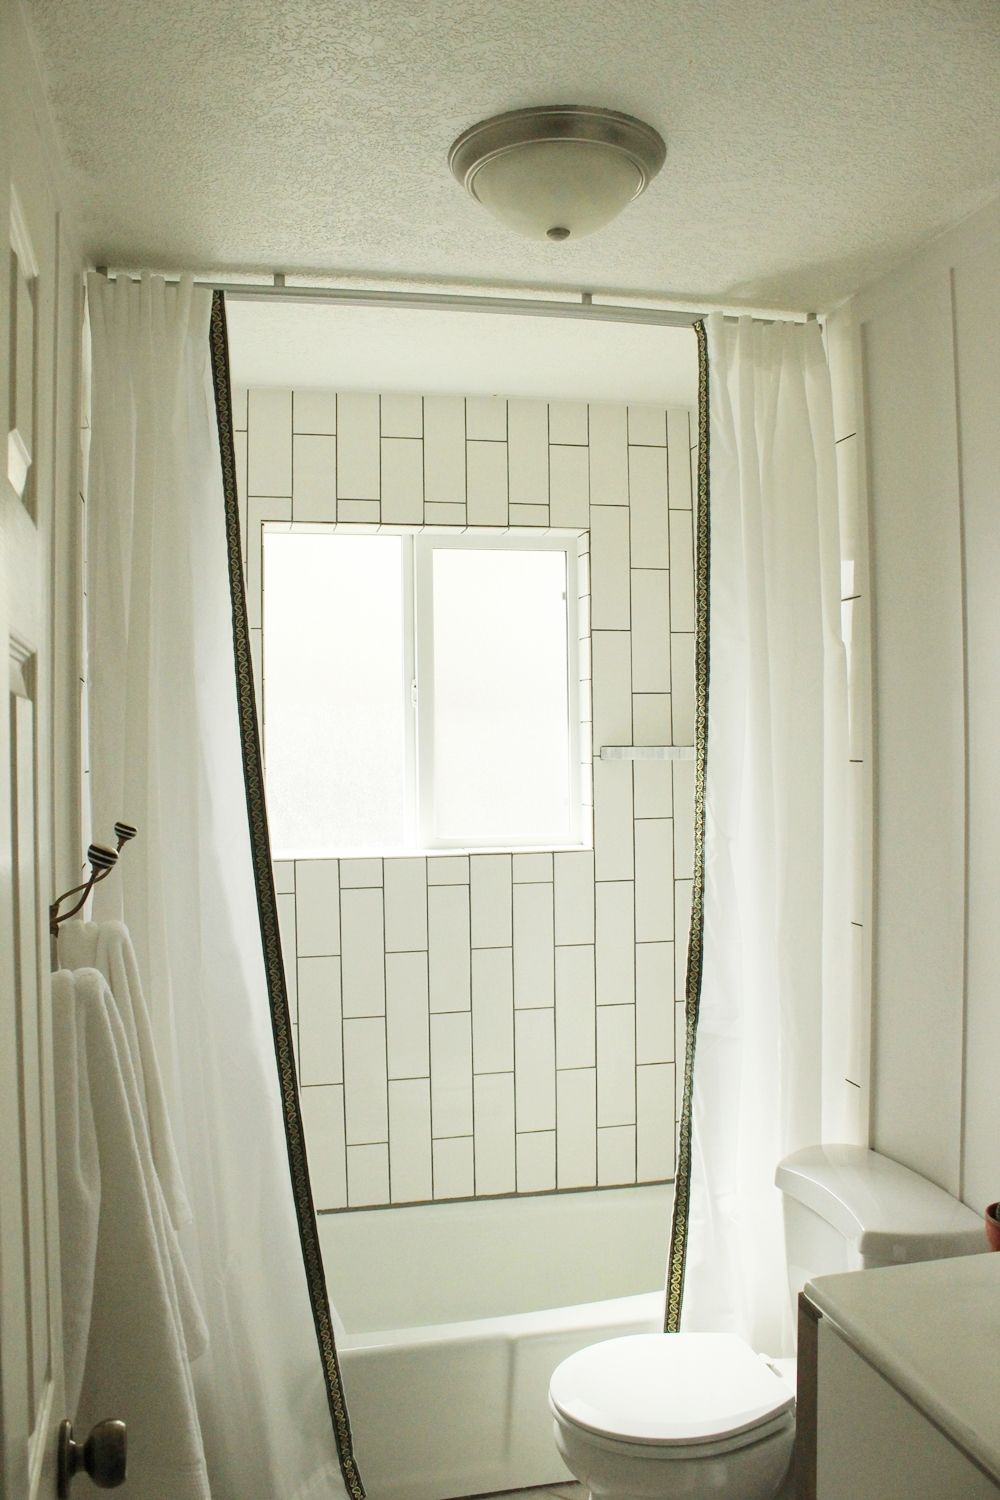 Delicieux Ceiling Mount Shower Curtain Install